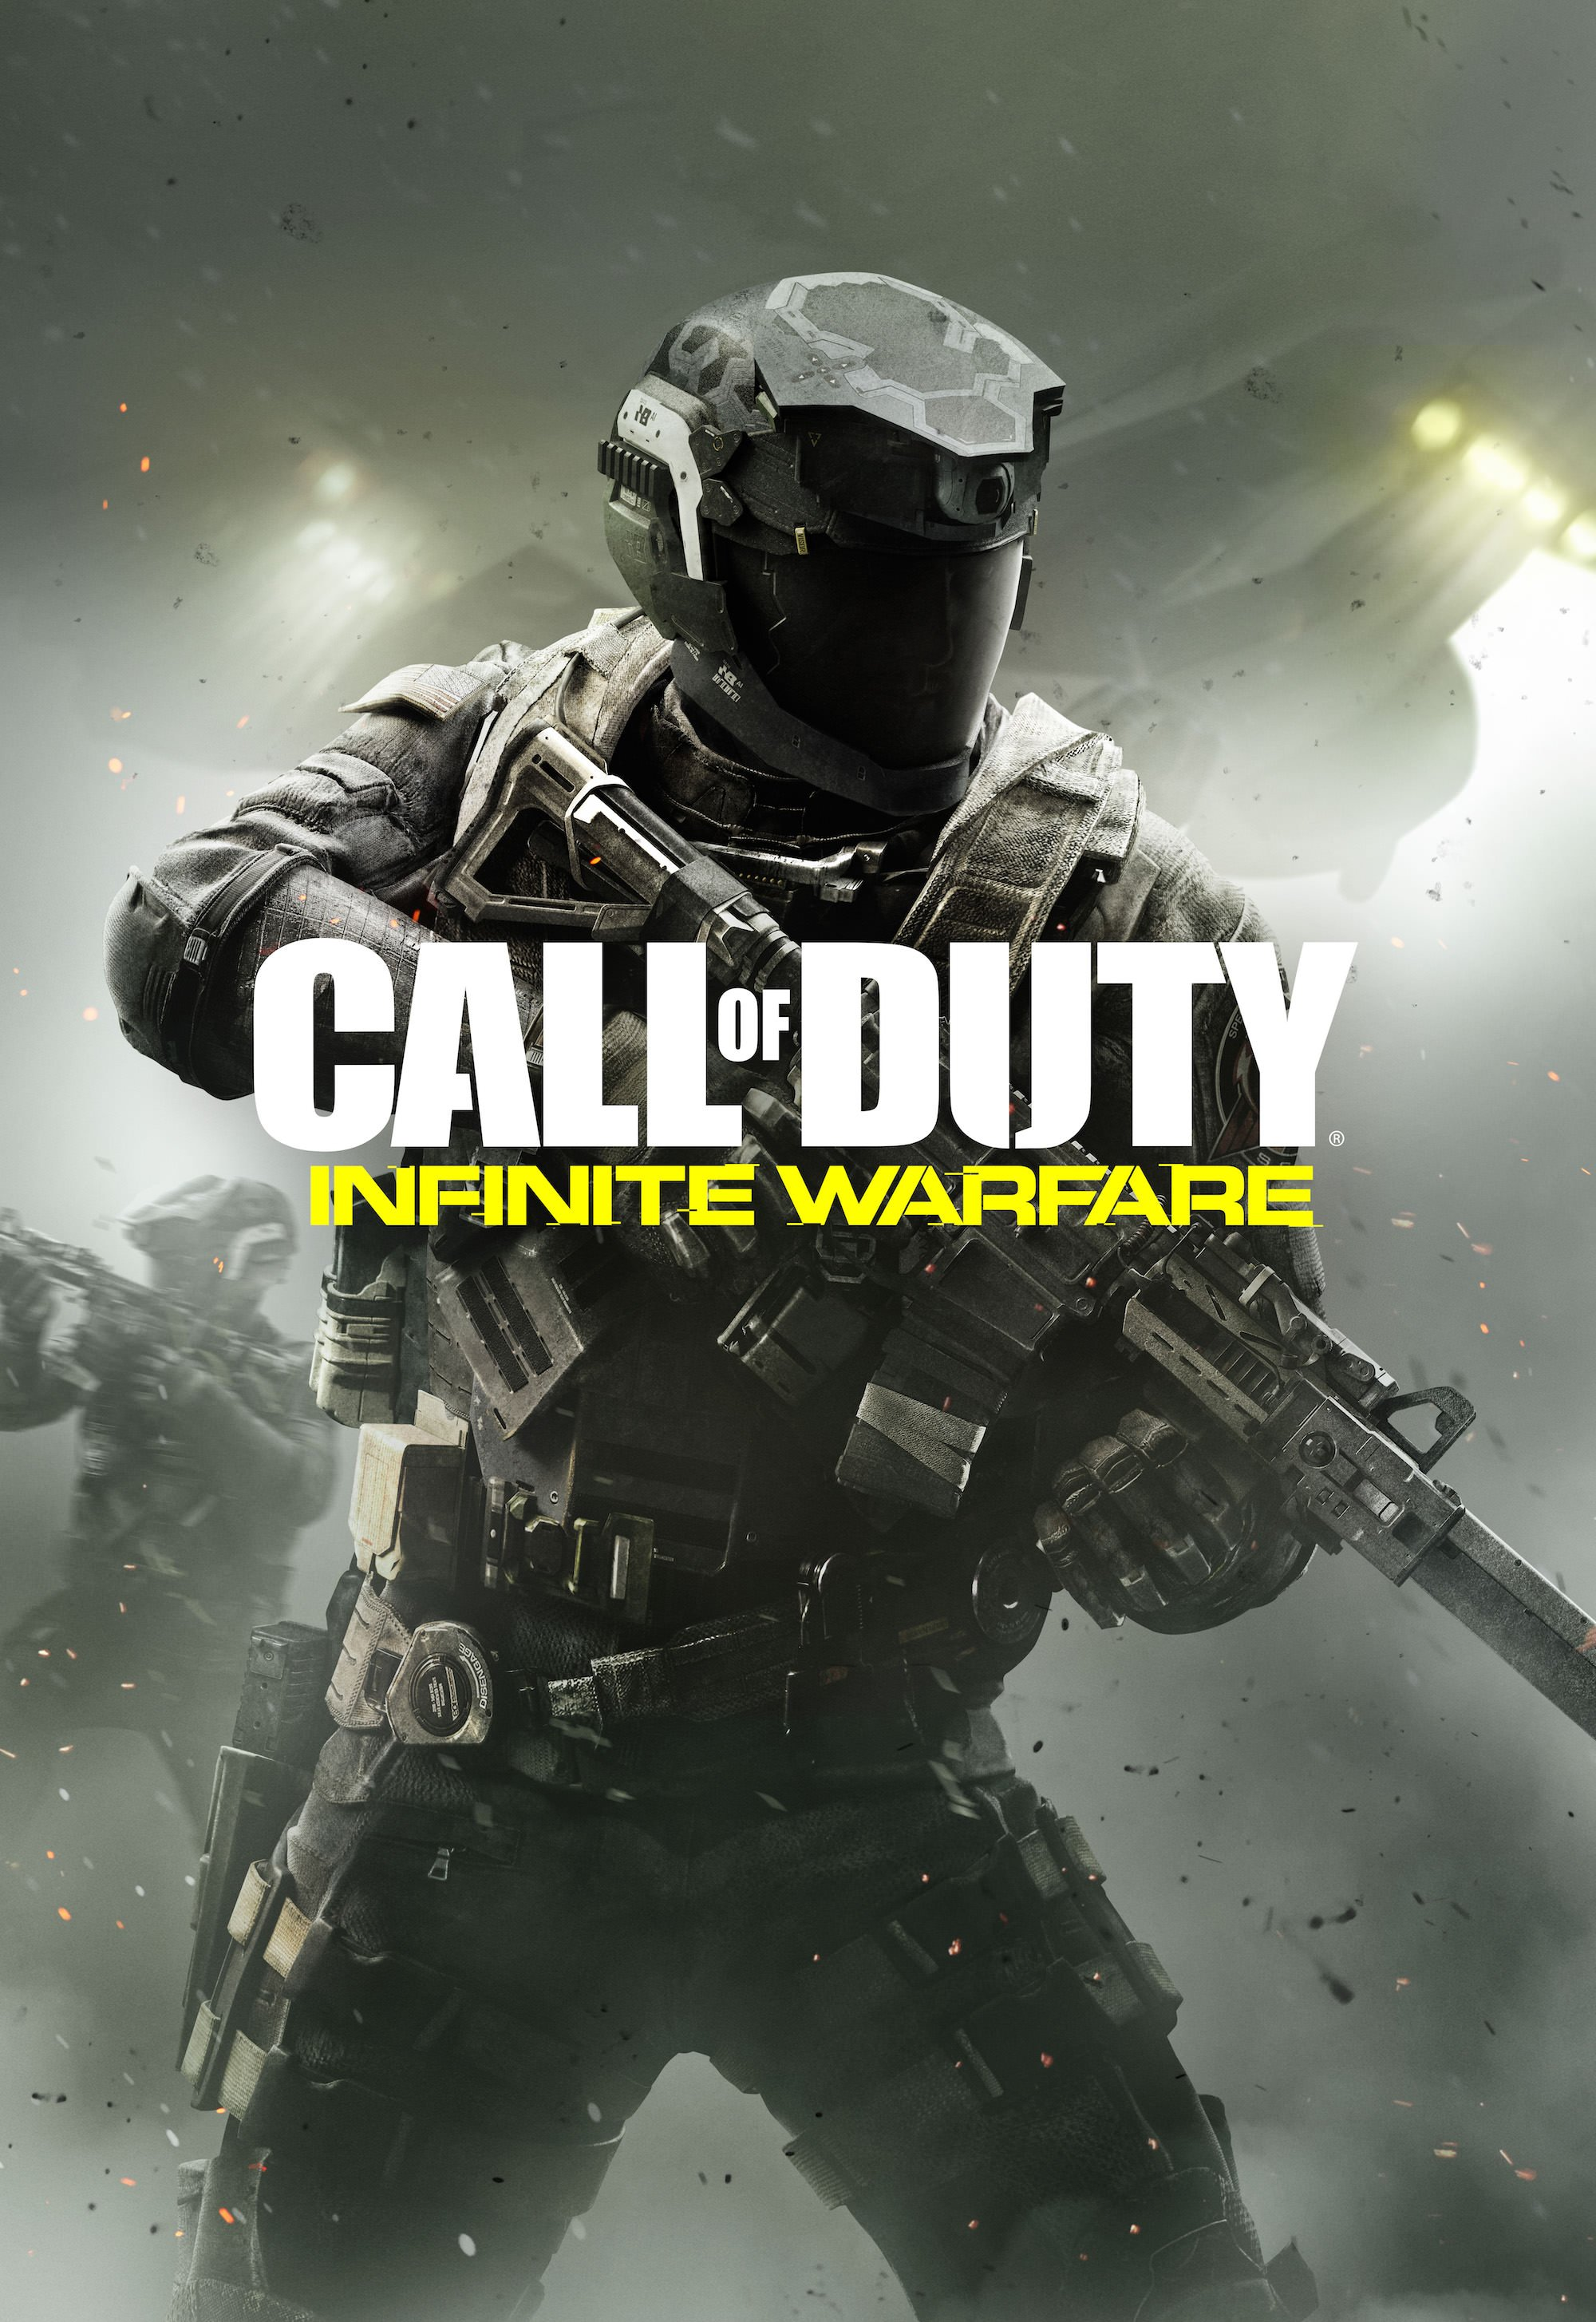 New official Call of Duty: Infinite Warfare and Modern